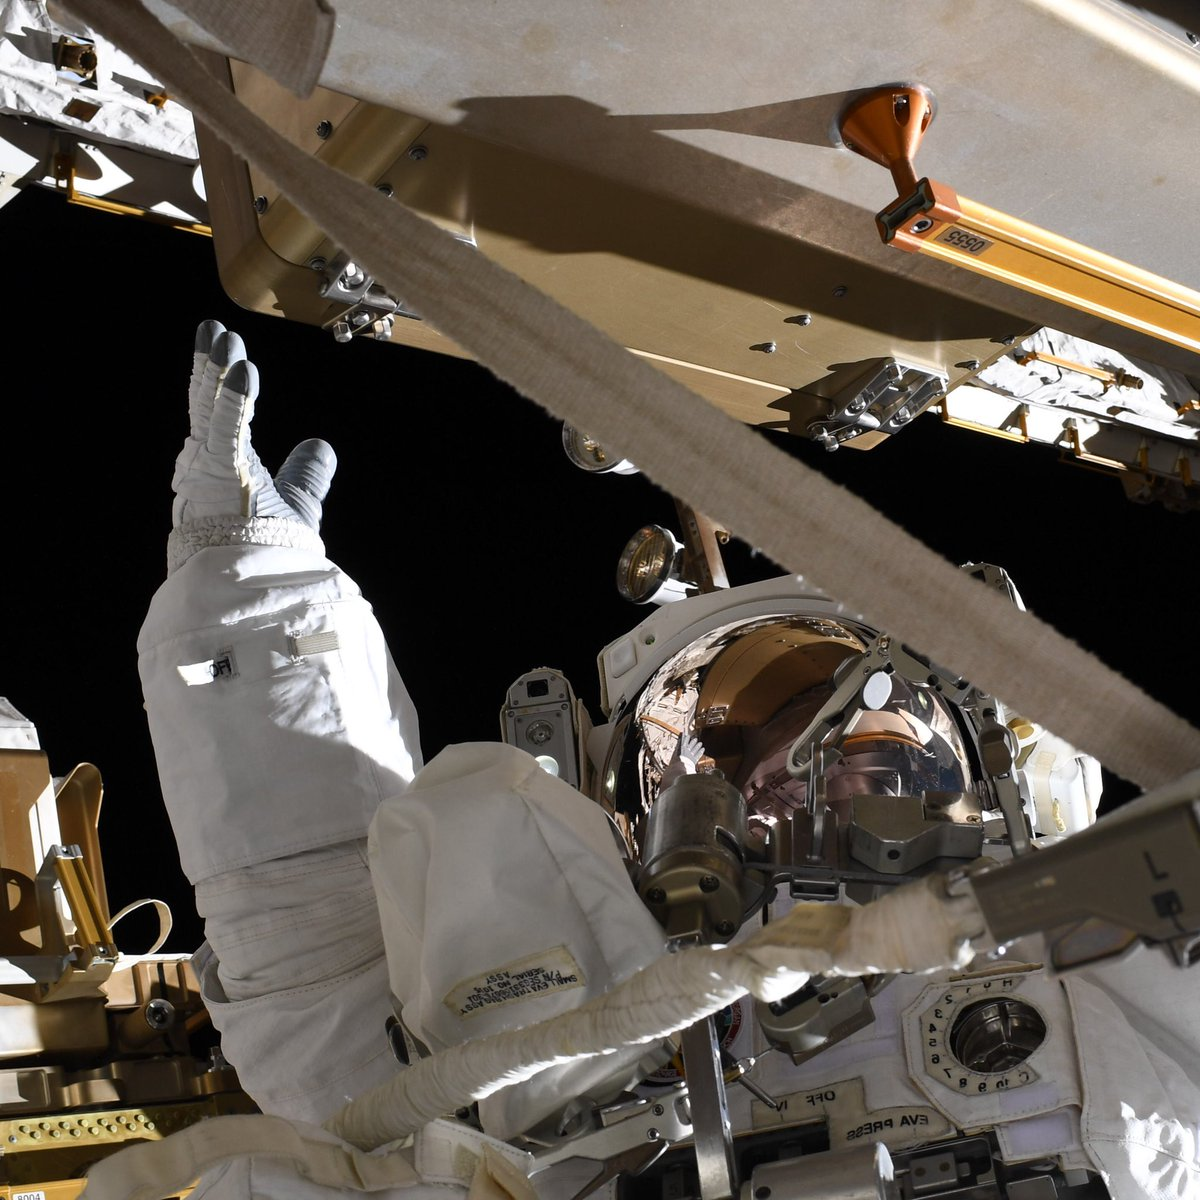 To all those reaching to new heights: yes you can. #AllWomanSpacewalk